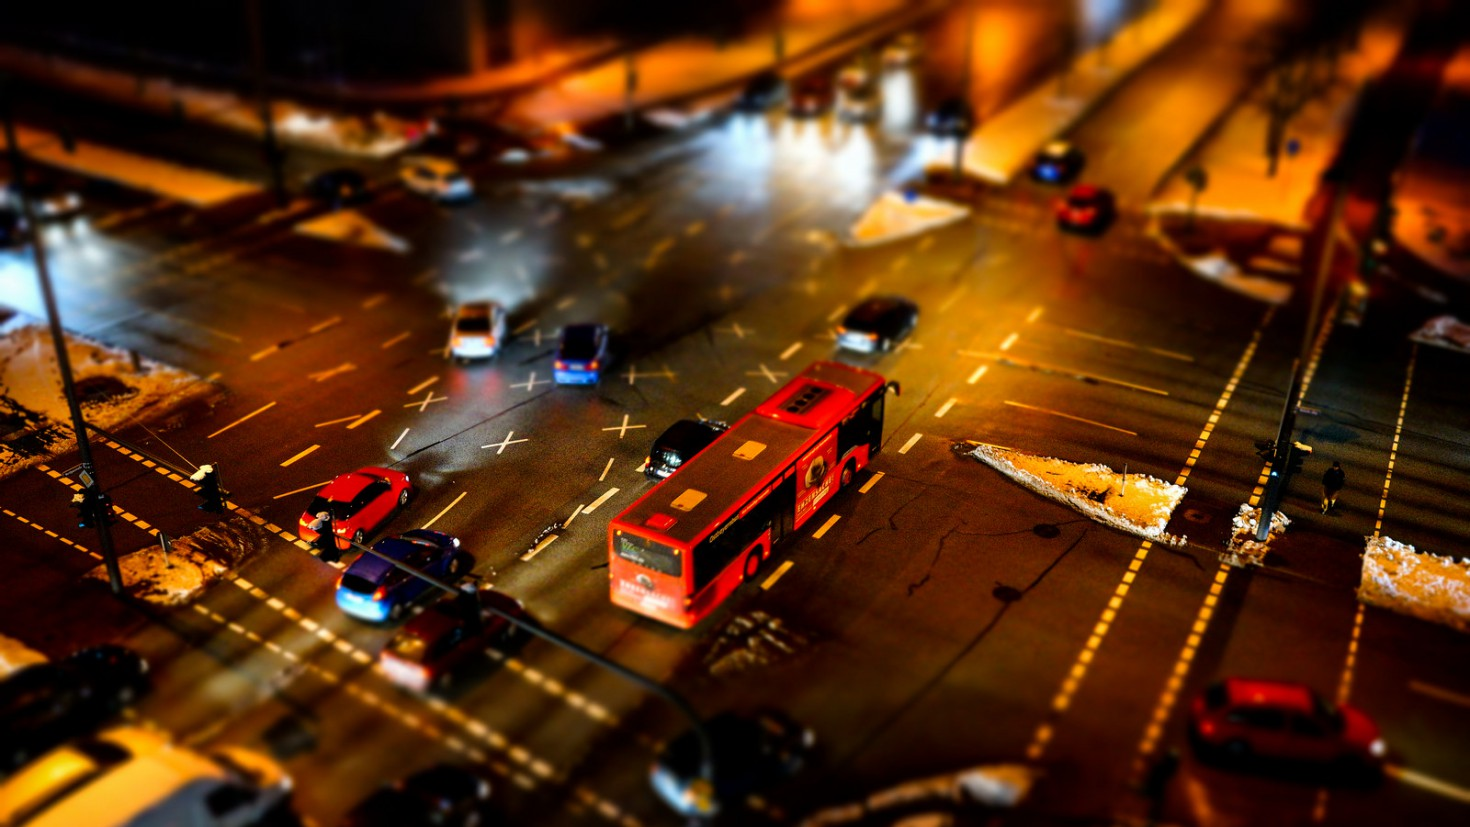 traffic is a Source of black carbon emission (photo: mripp / flickr / creative commons)